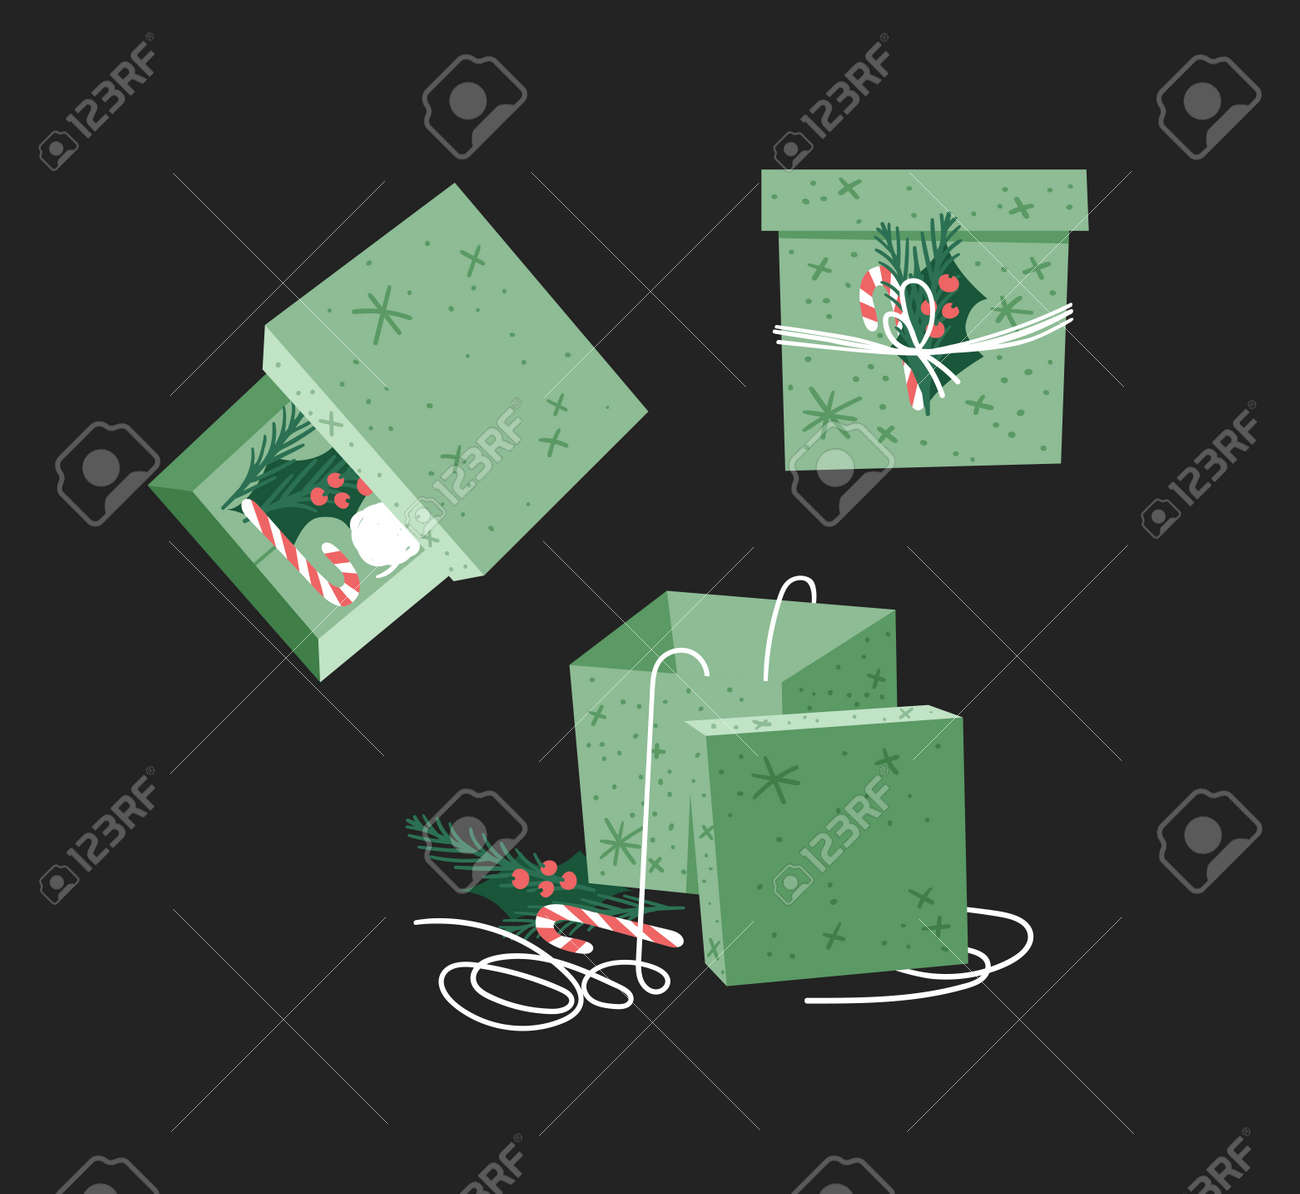 Cartoon Illustration Christmas Gift Box isolated. Creative Flat Style Art Work Collection. Actual vector drawing of Holiday Things Packing. Cozy Winter Decoration set - 160211245